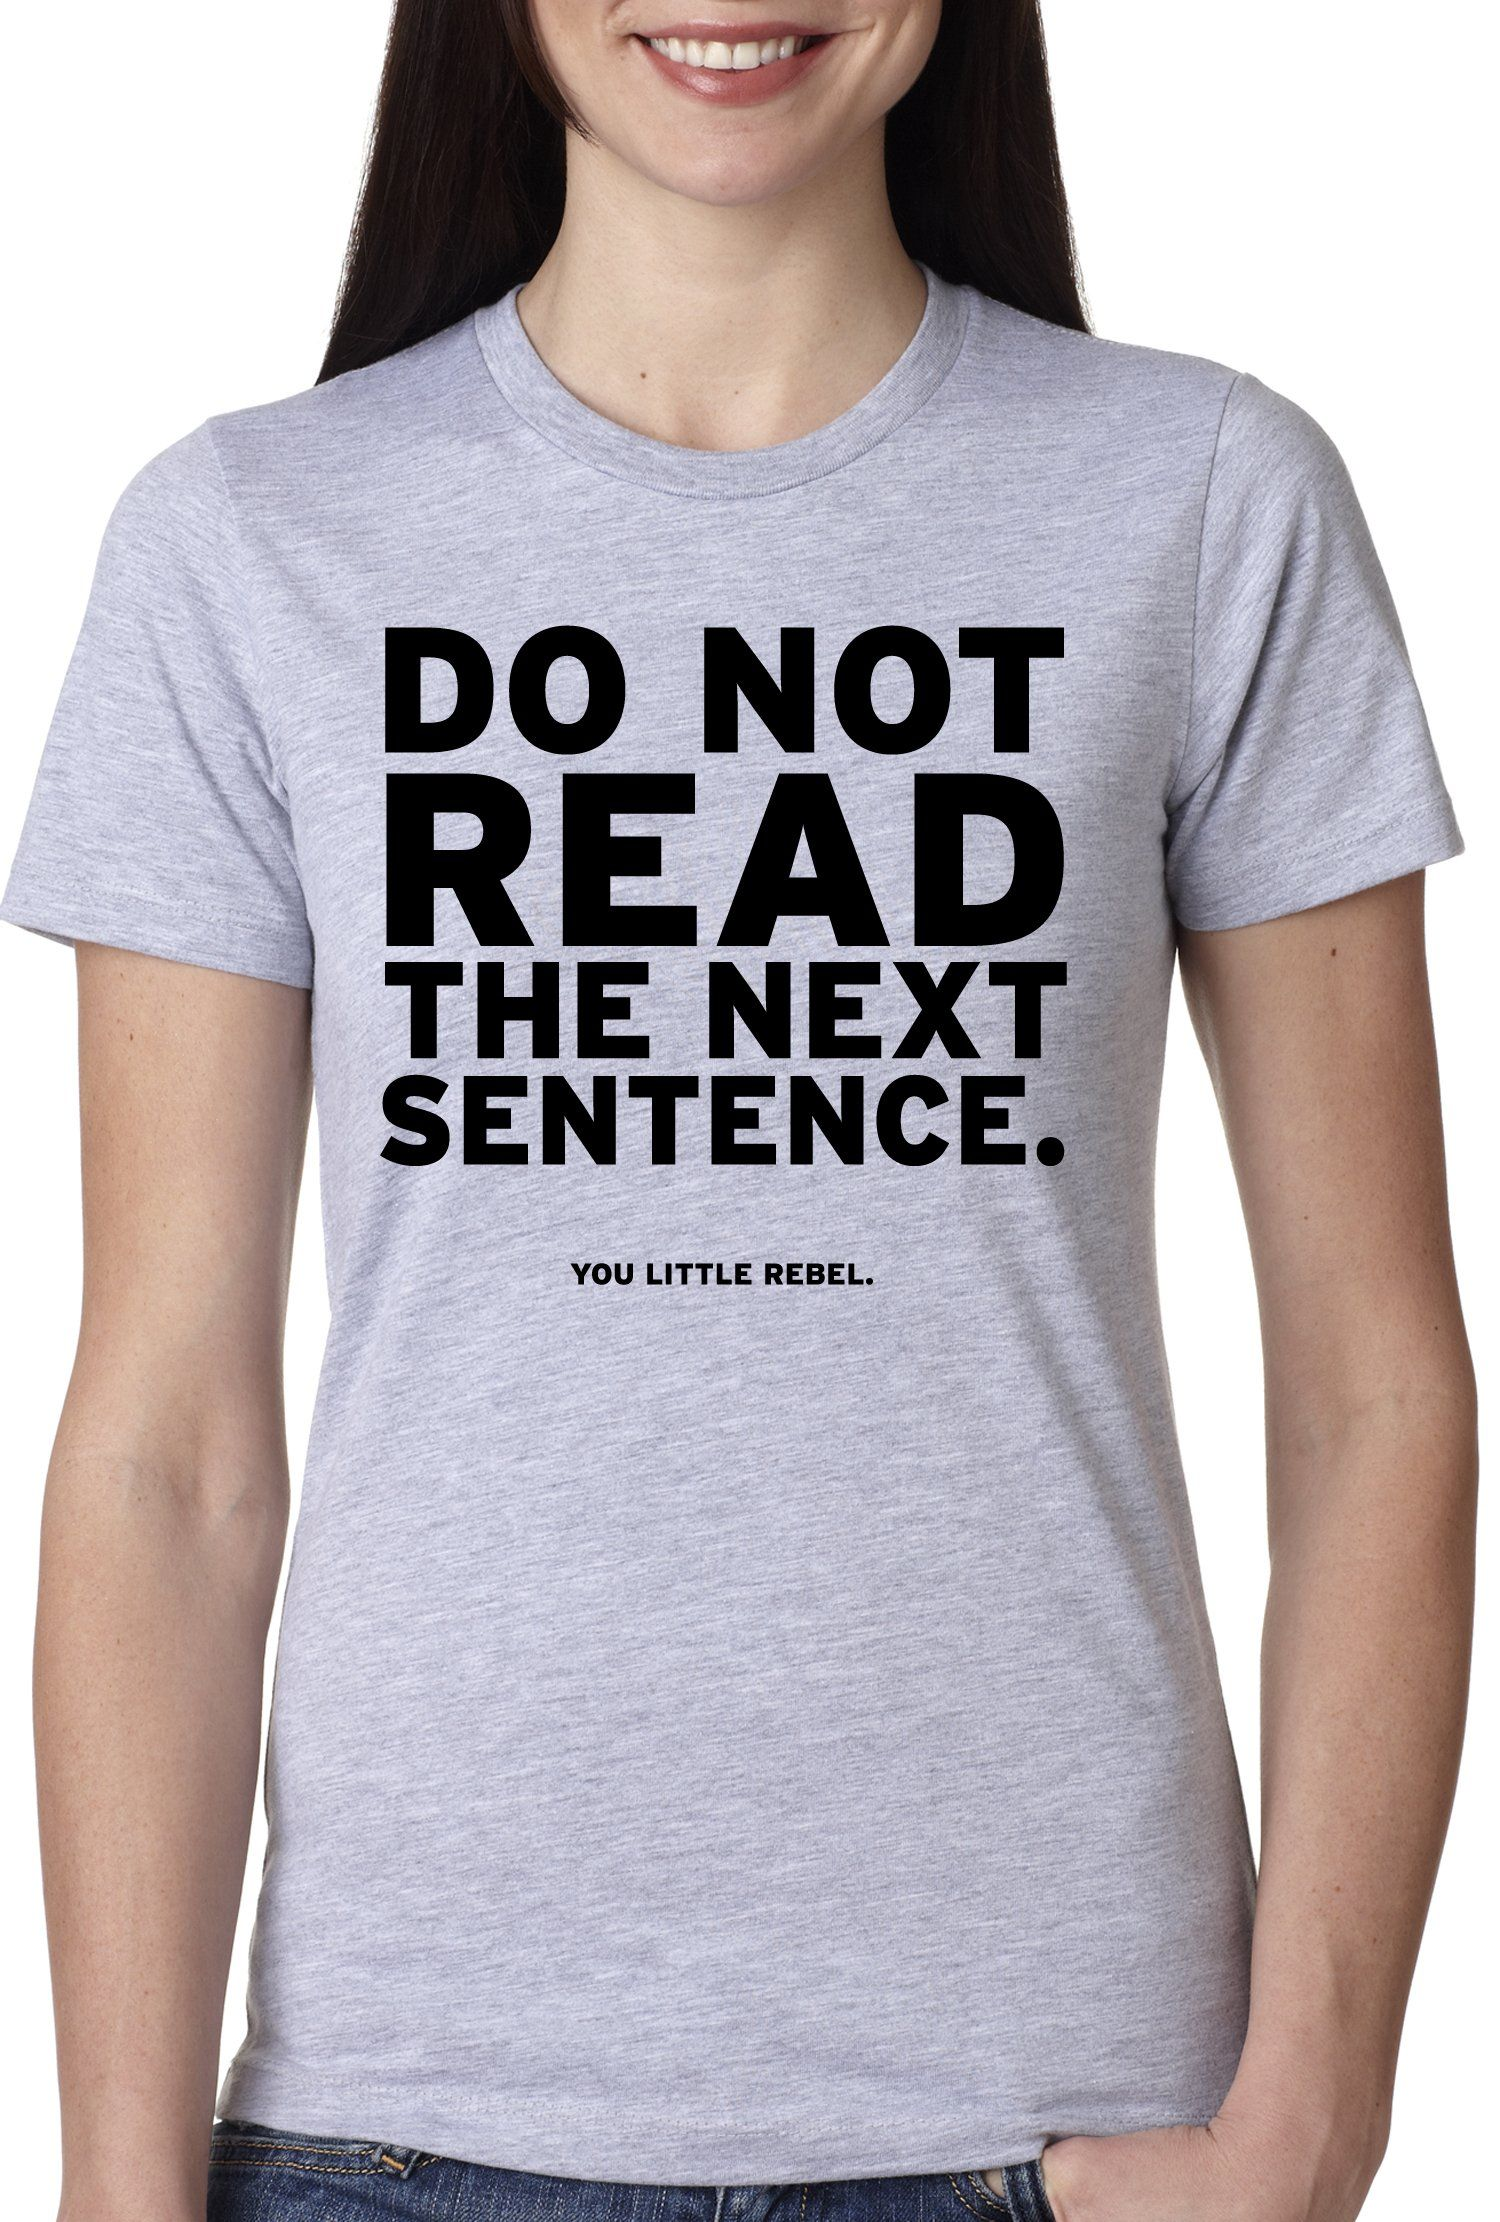 women 39 s do not read the next sentence t shirt funny english shirt for women l hoodies t. Black Bedroom Furniture Sets. Home Design Ideas